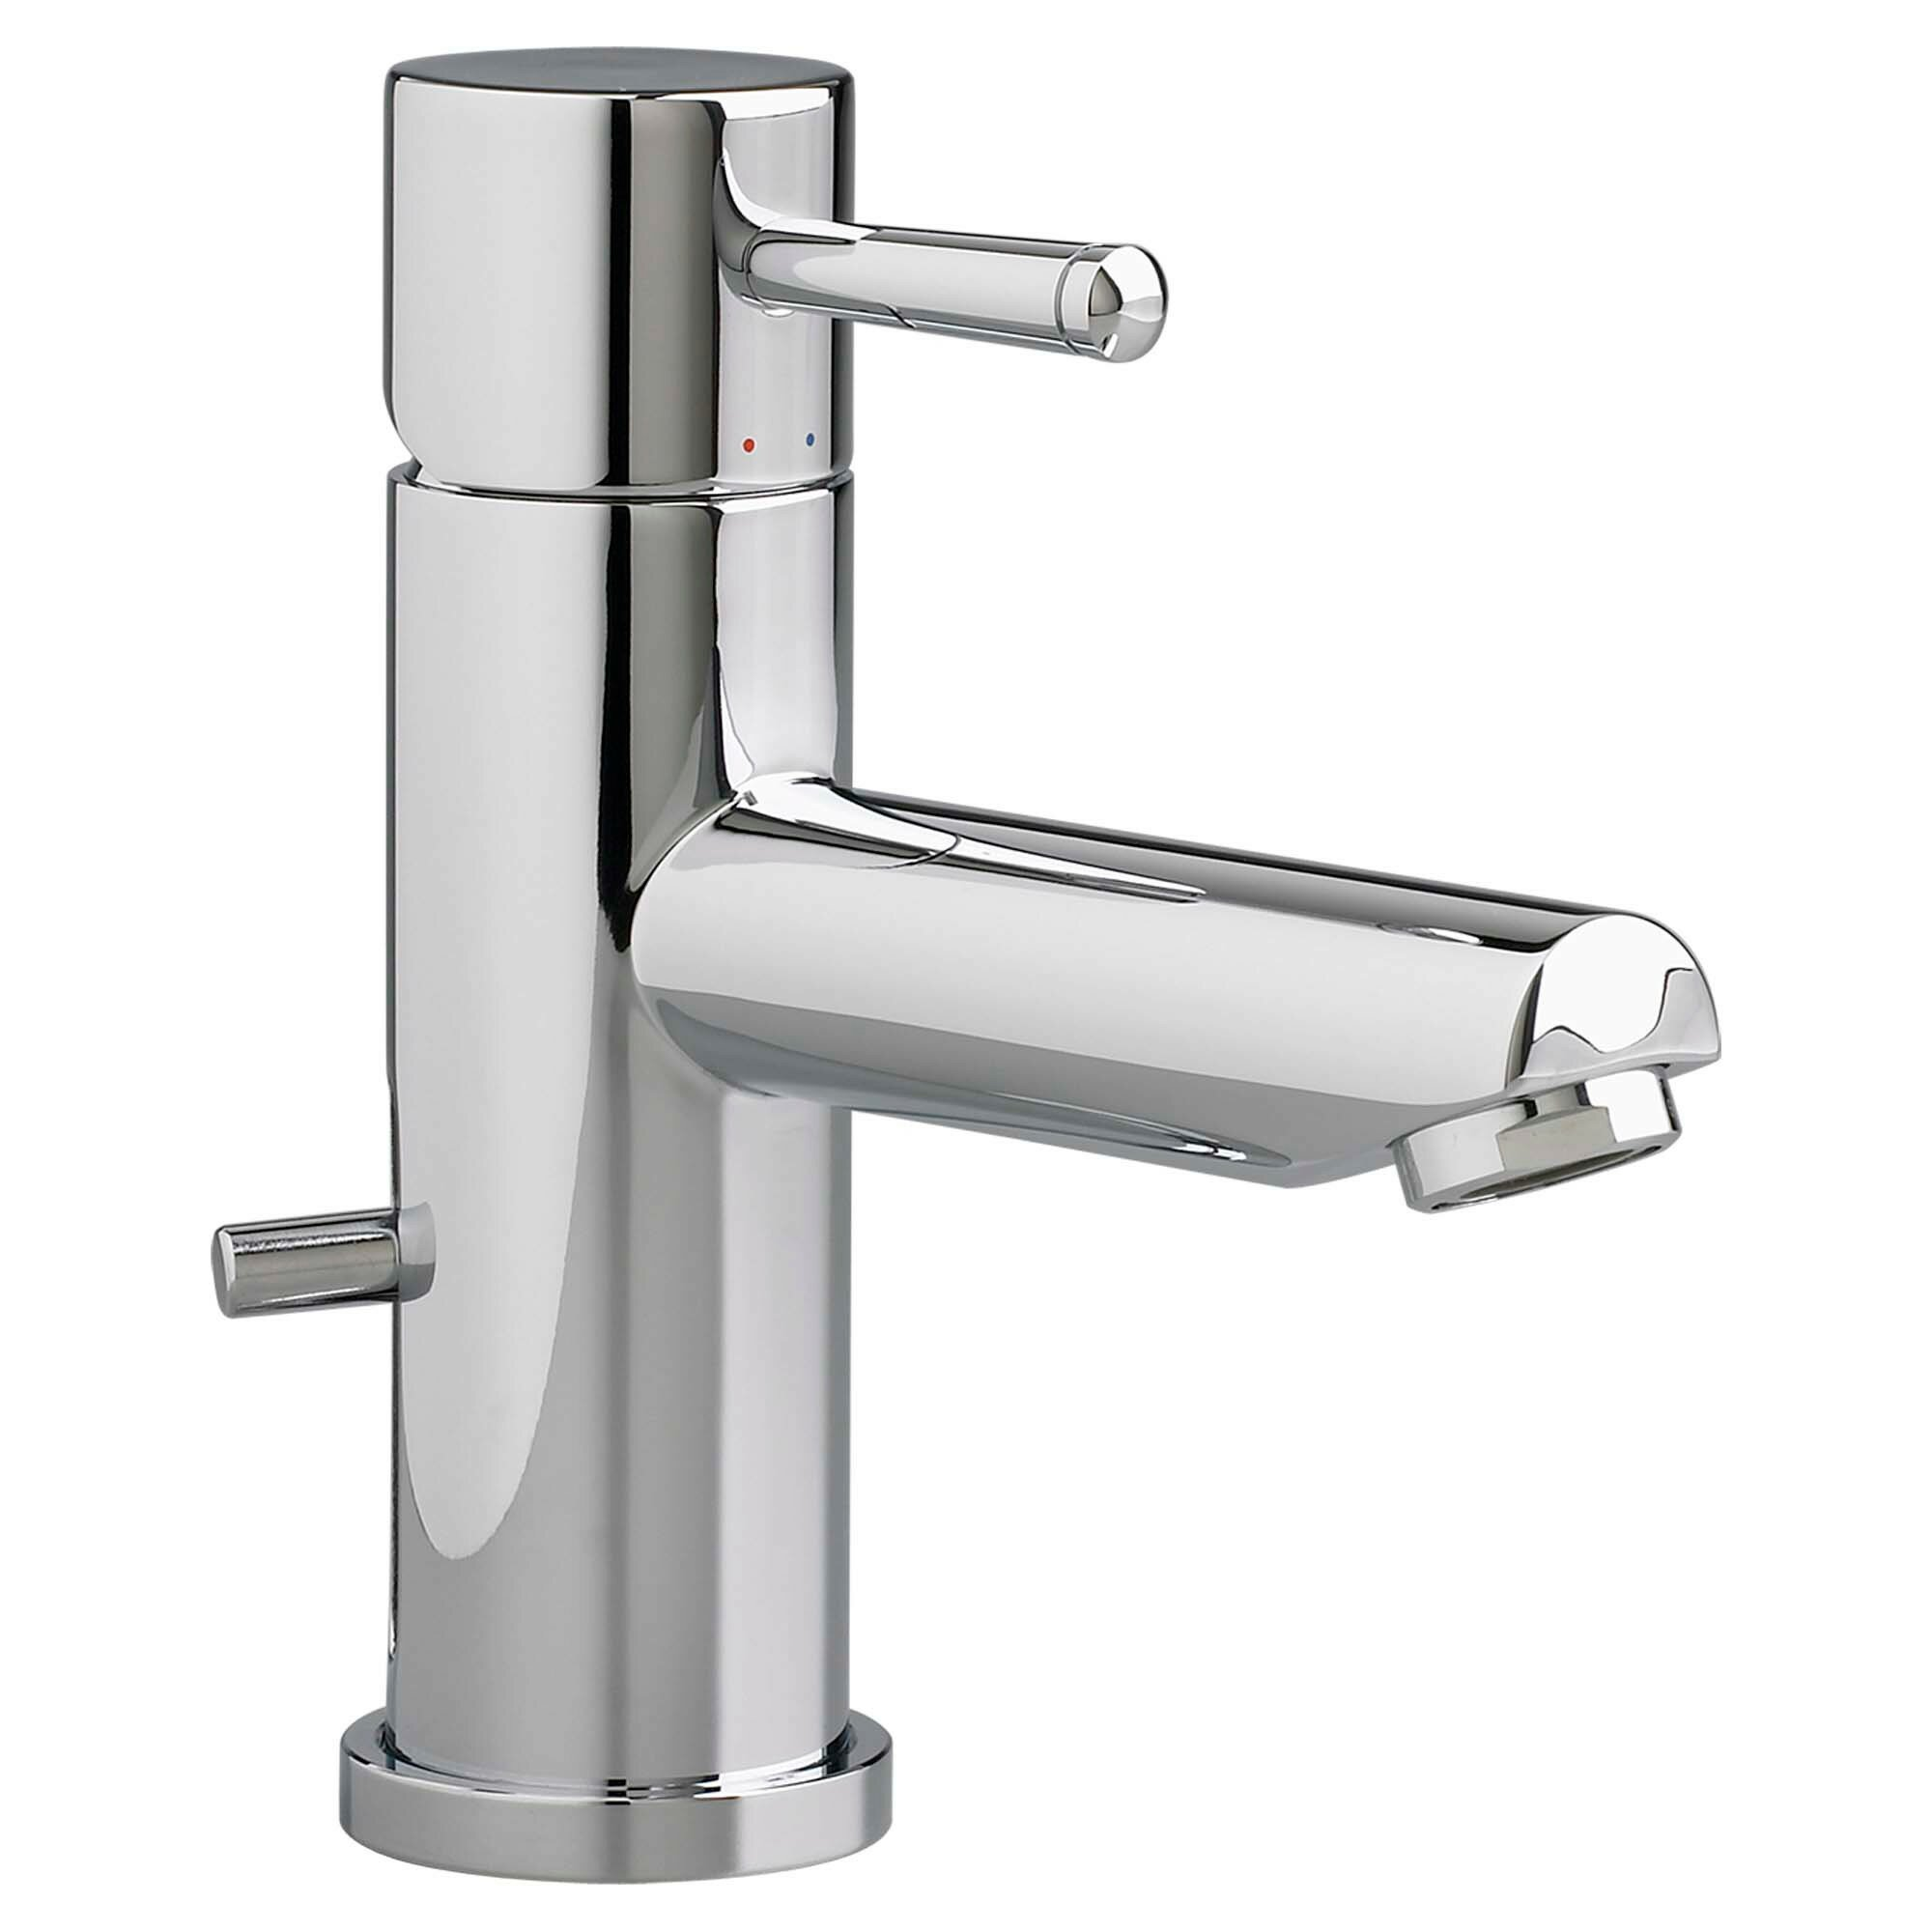 American standard serin single hole bathroom faucet with for American standard bathroom faucets reviews